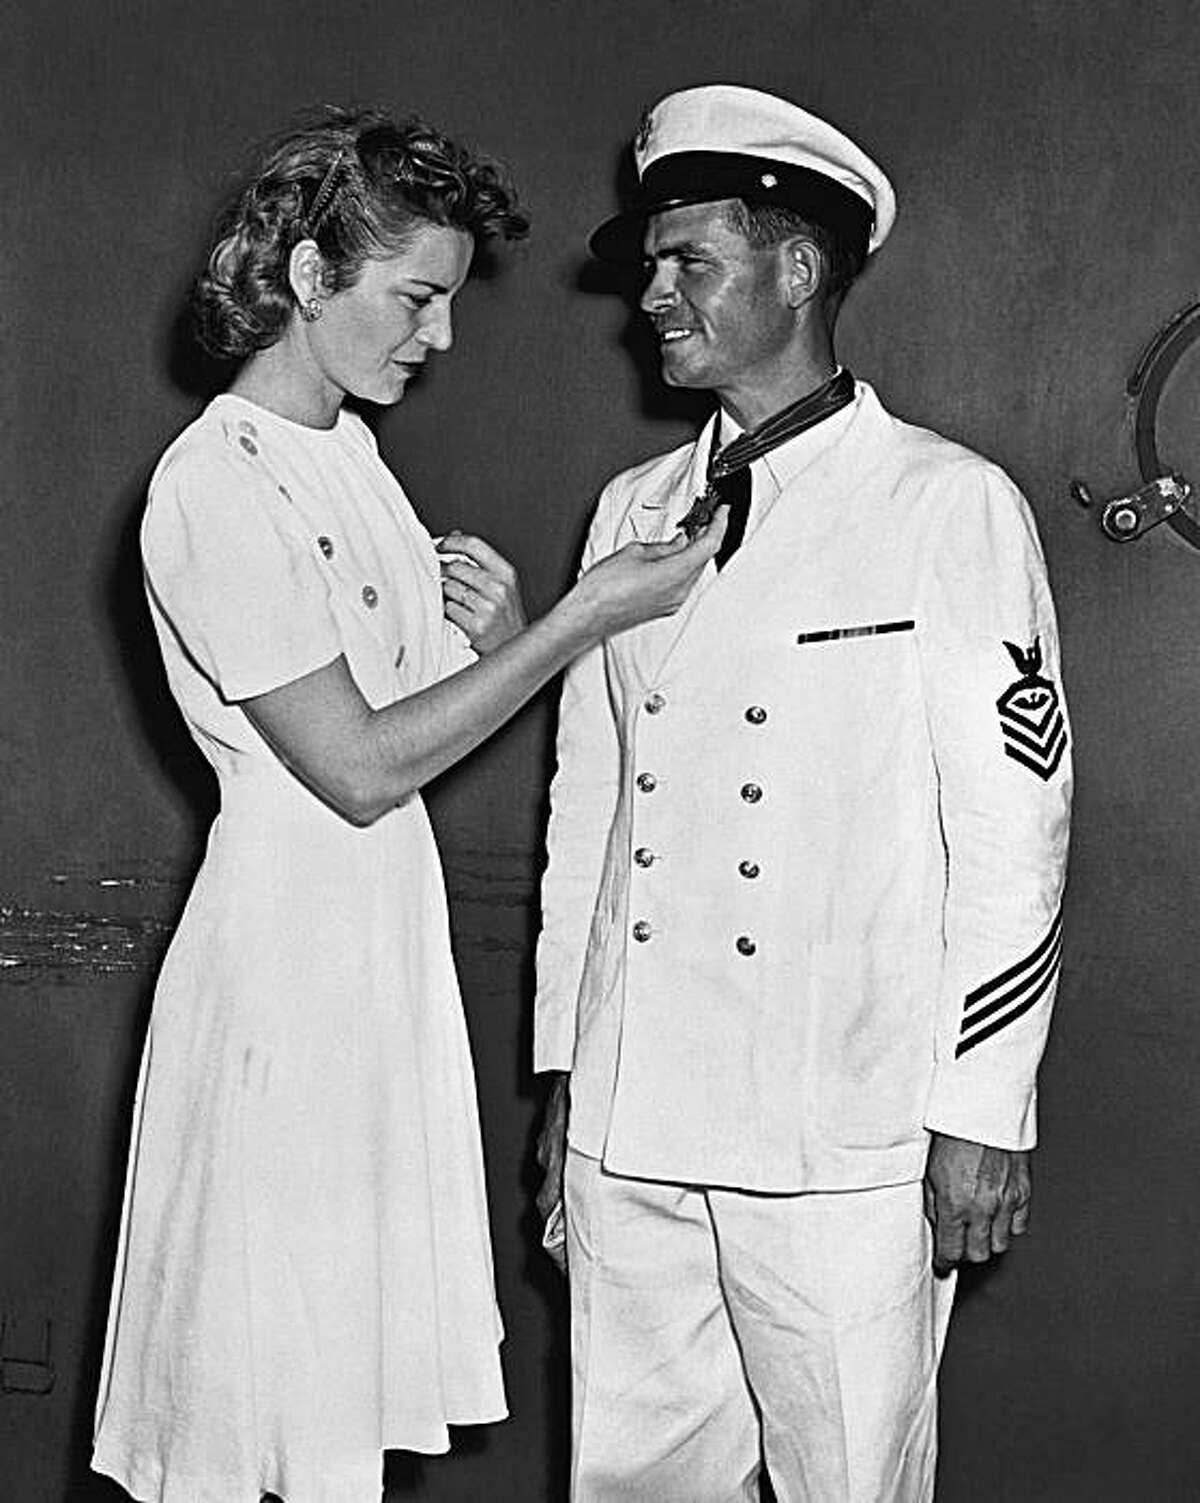 FILE - In this Sept. 28, 1942 photo provided by the U.S. Navy, Chief Ordnanceman John W. Finn is congratulated by his wife Alice at Pearl Harbor, Hawaii, after he was awarded the Congressional Medal of Honor or heroism at Kaneohe Naval Air Station for hisactions during the attack on Pearl Harbor. Finn, the oldest Medal of Honor recipient from World War II, died Thursday May 27, 2010 at his San Diego-area home at age 100.